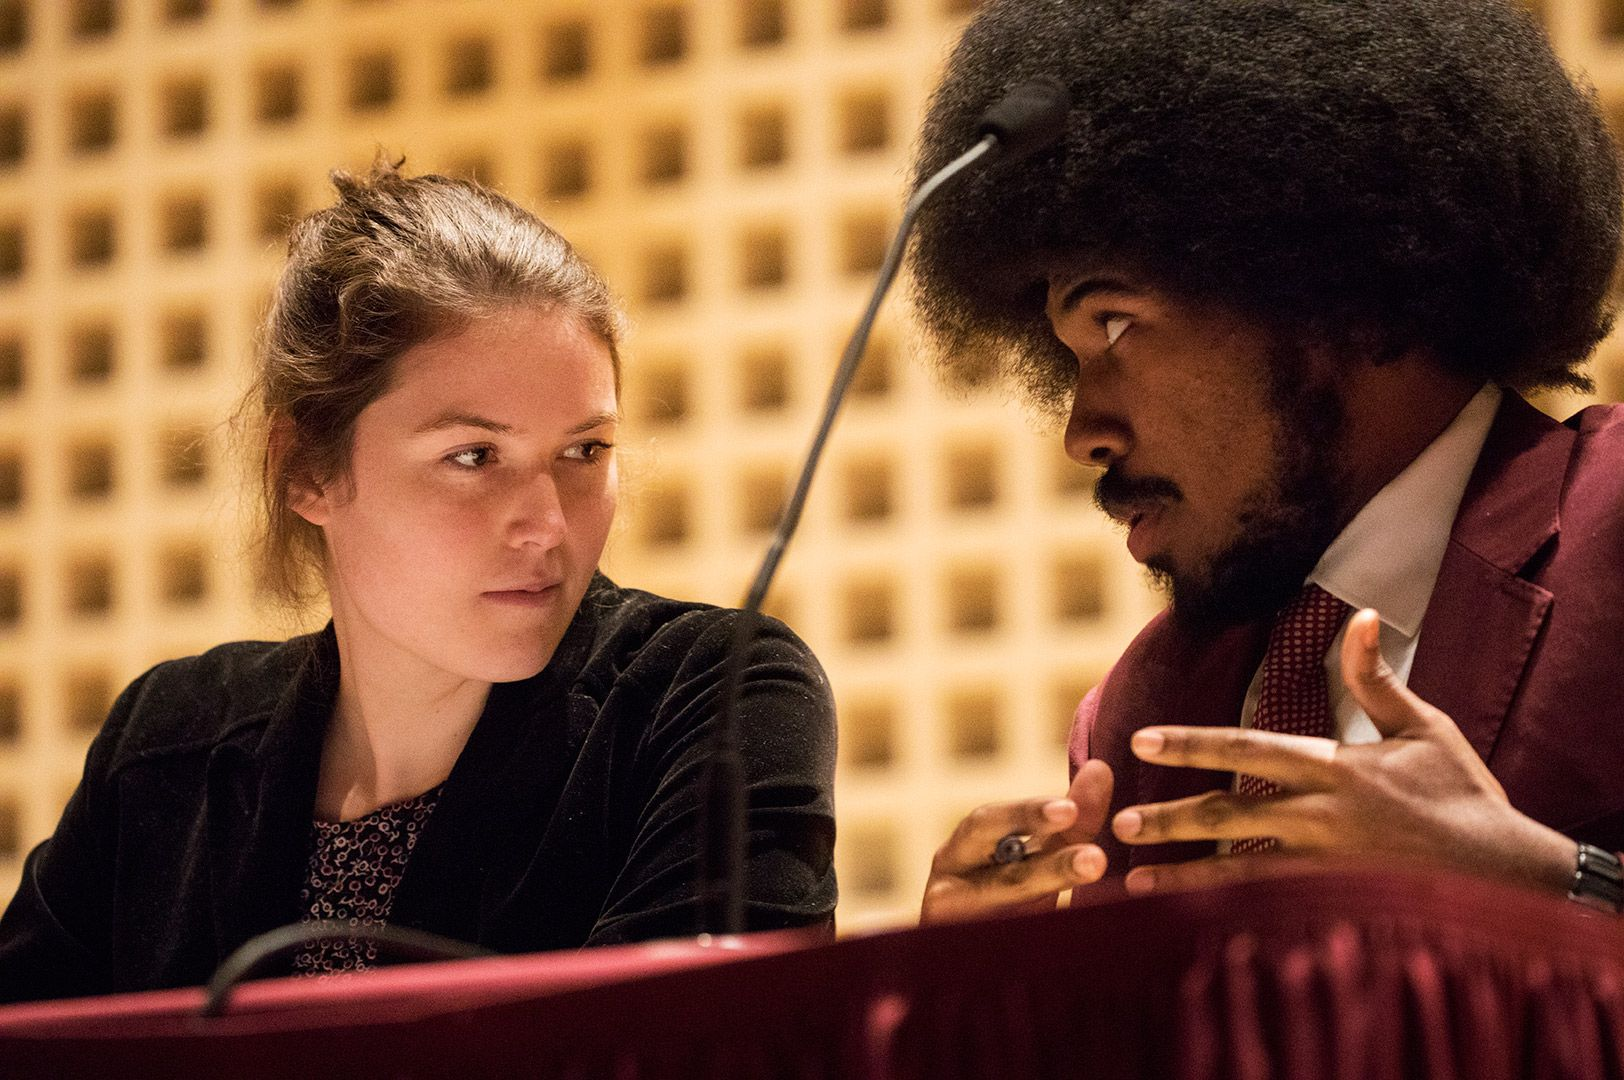 Abby Westberry '19 and senior William Coggins of the Morehouse College debate team deliberate before the Rev. Dr. Benjamin Elijah Mays, Class of 1920, Debate on Jan. 15, 2018. (Theophil Syslo/Bates College)